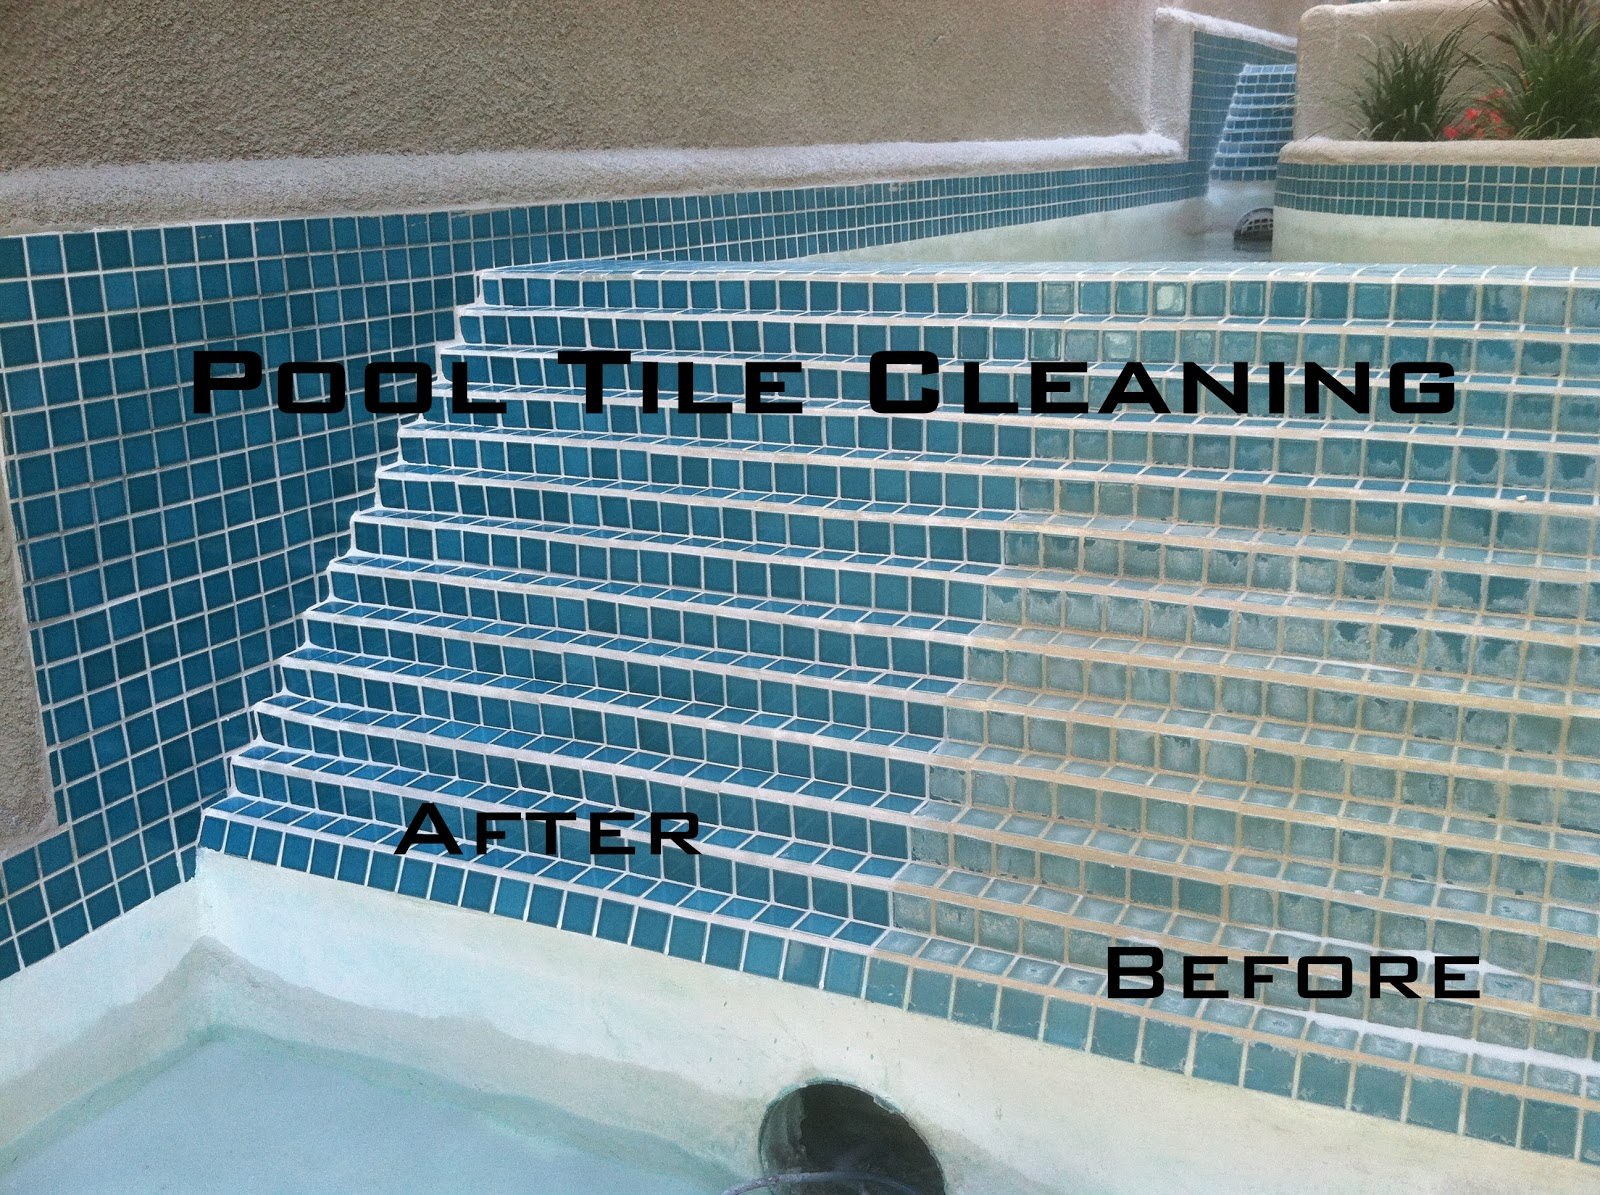 Pool tile cleaning pro 877 835 8763 orange county los angeles riverside palm springs riverside for How to clean mosaic tiles in swimming pool